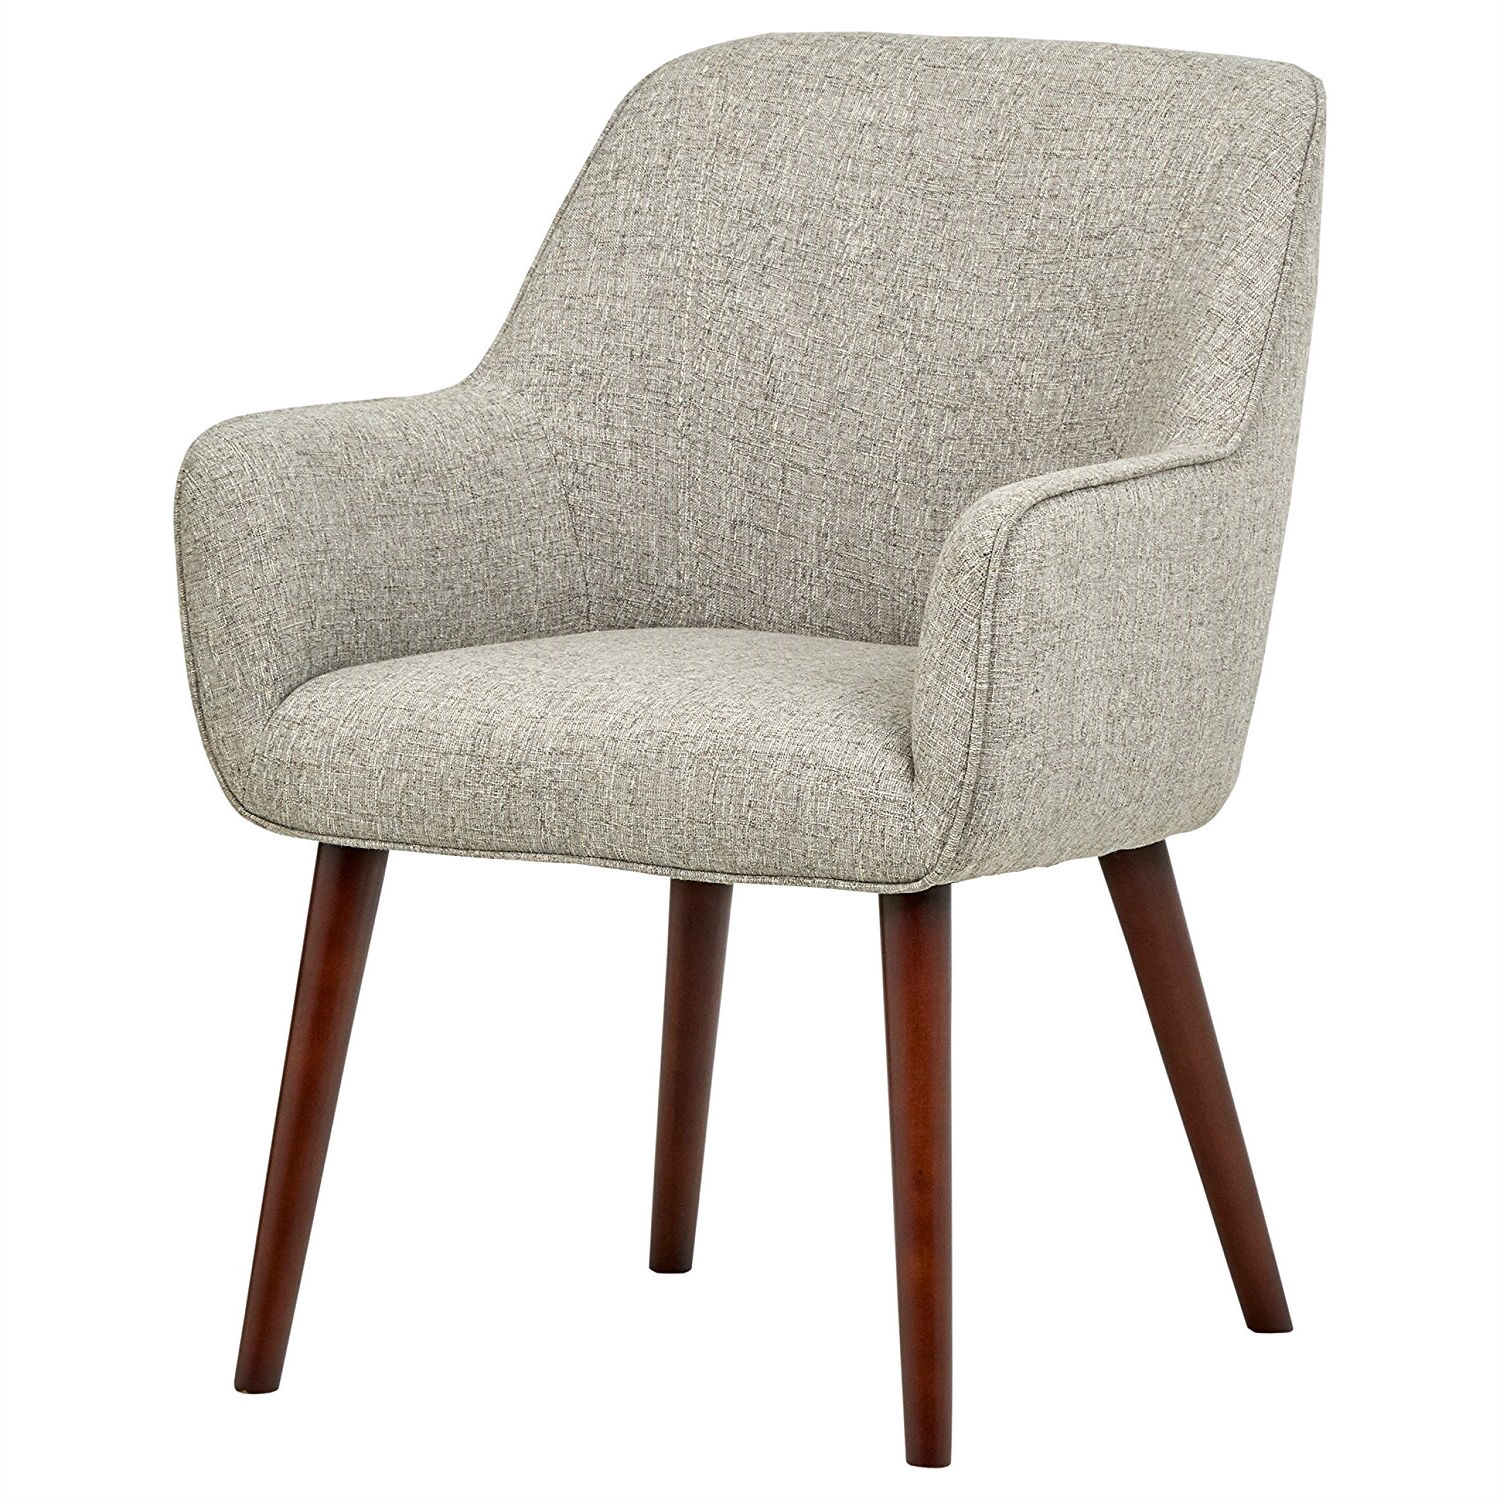 Mid Century Style Modern Accent Dining Chair With Wood Legs And